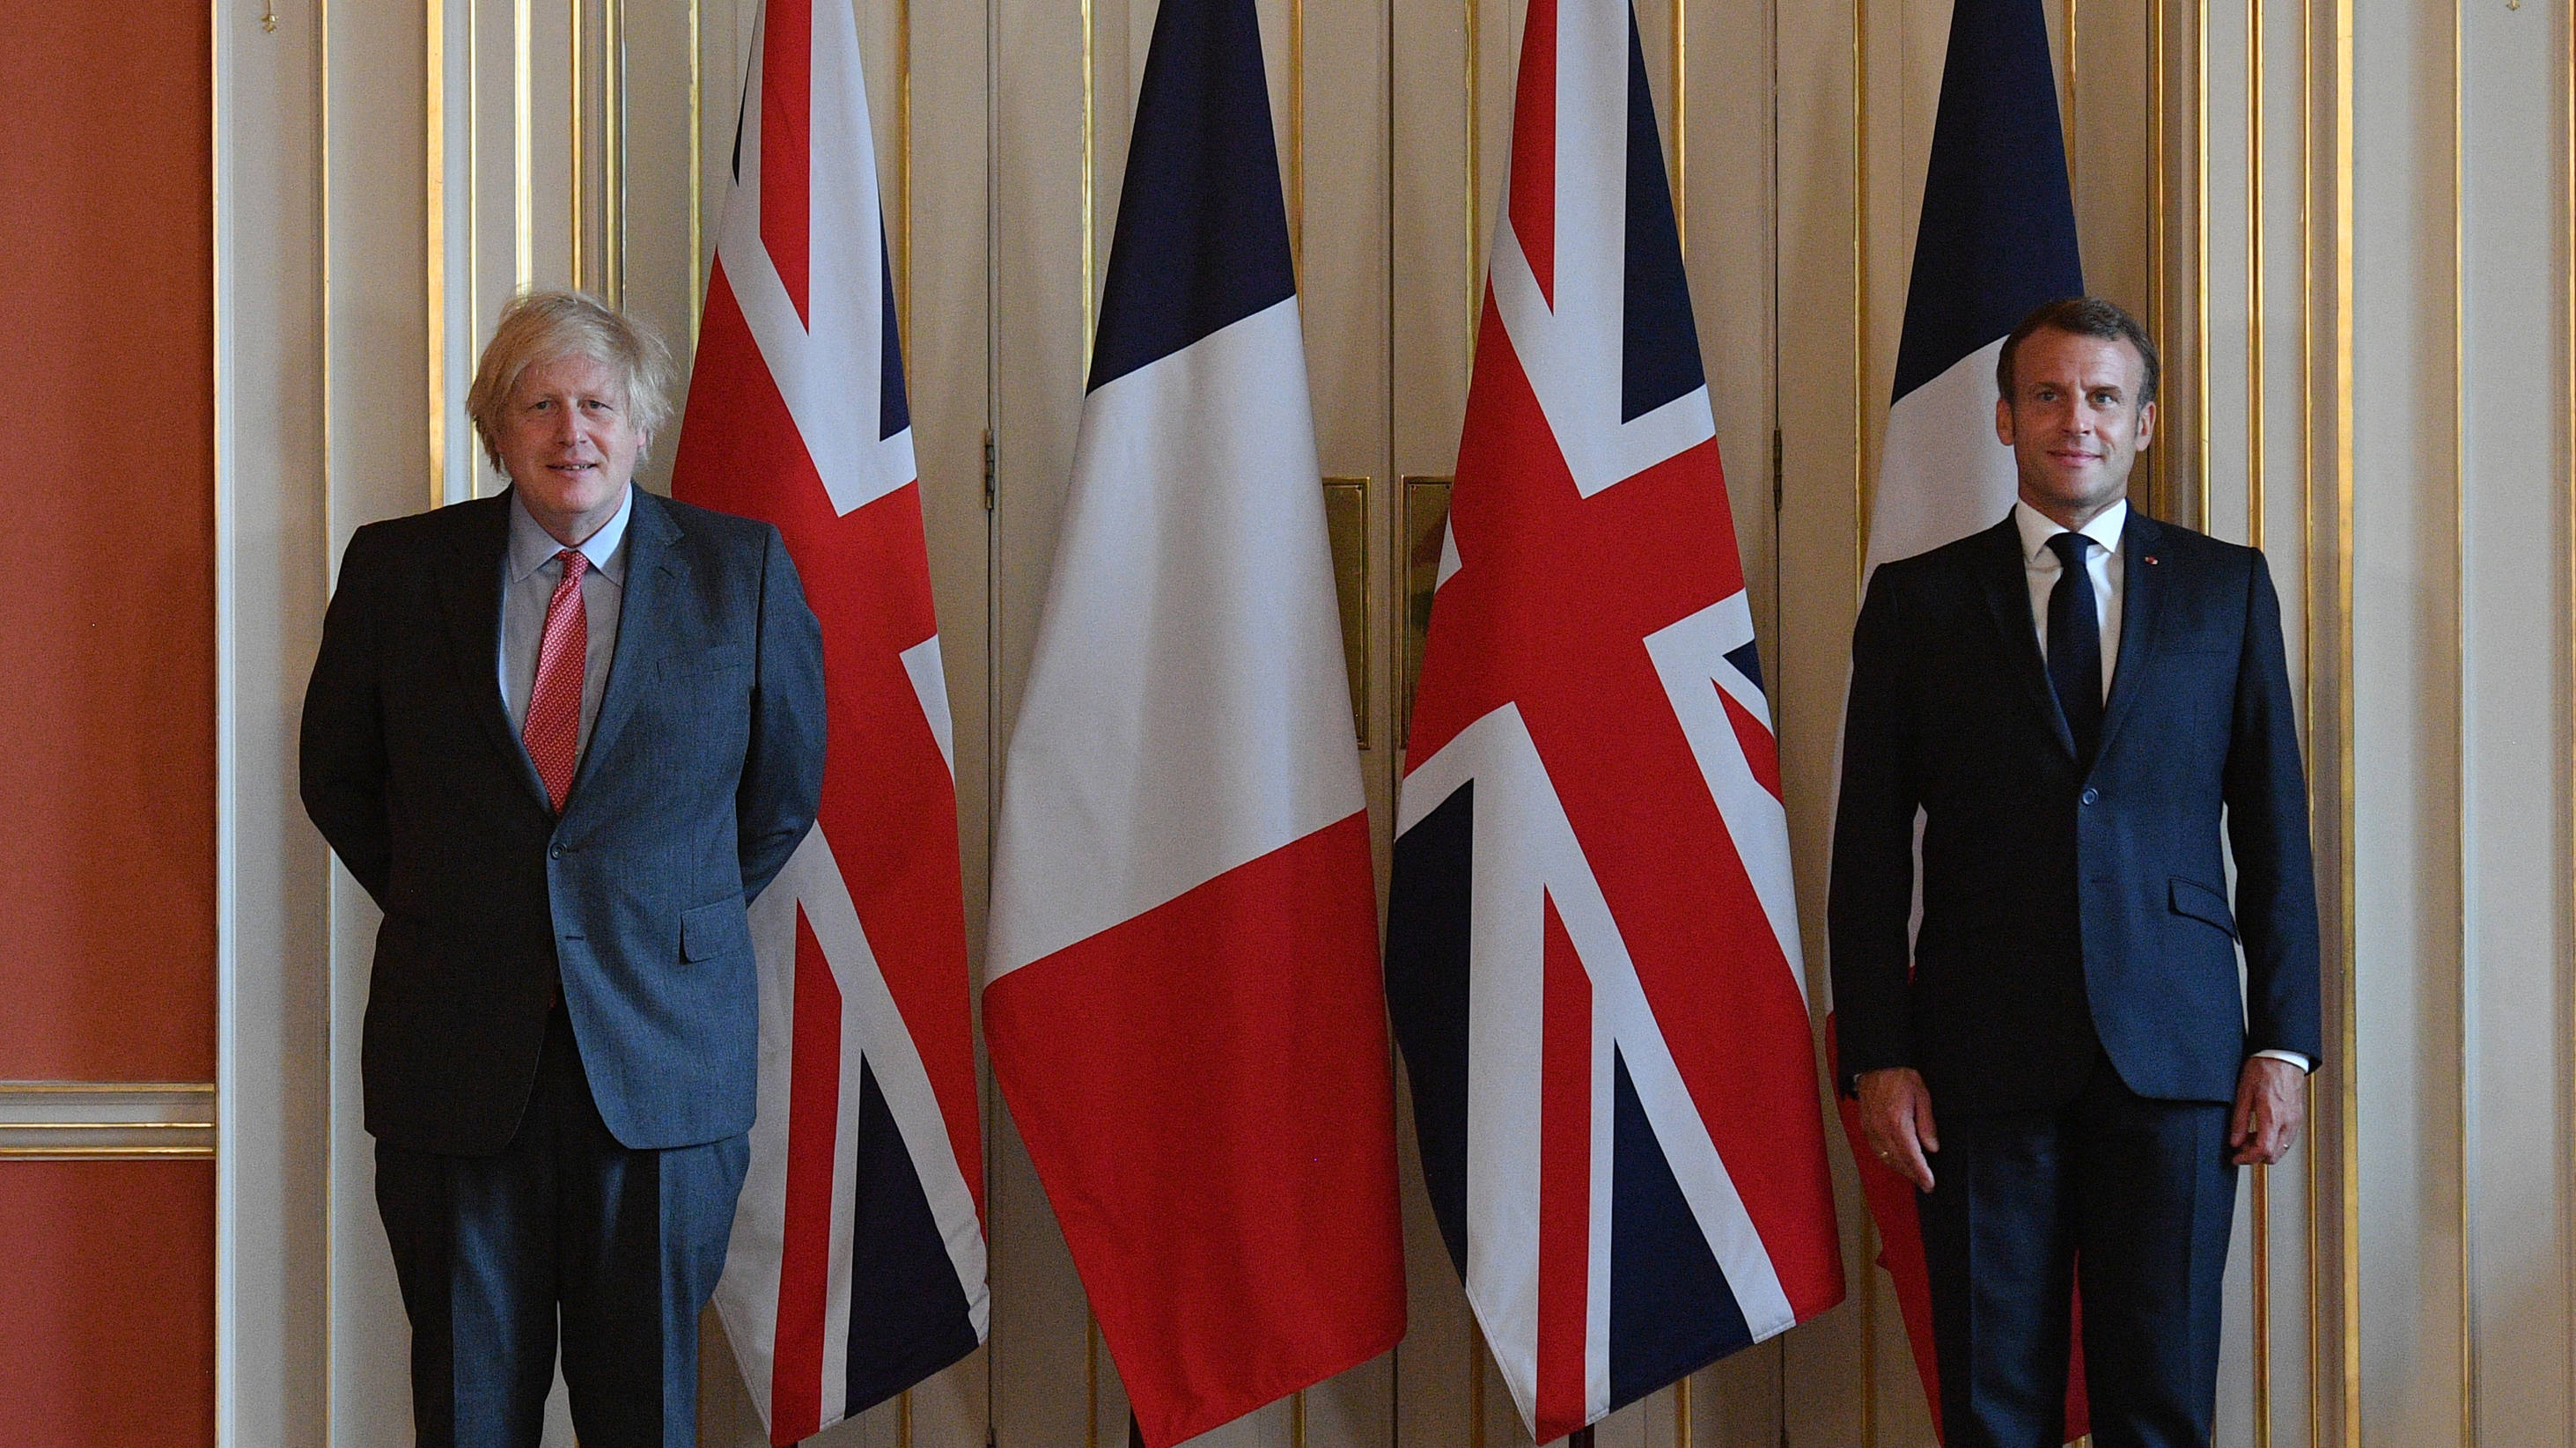 Boris Johnson And Emmanuel Macron Hold Brexit Talks Ahead Of October Deadline Lbc